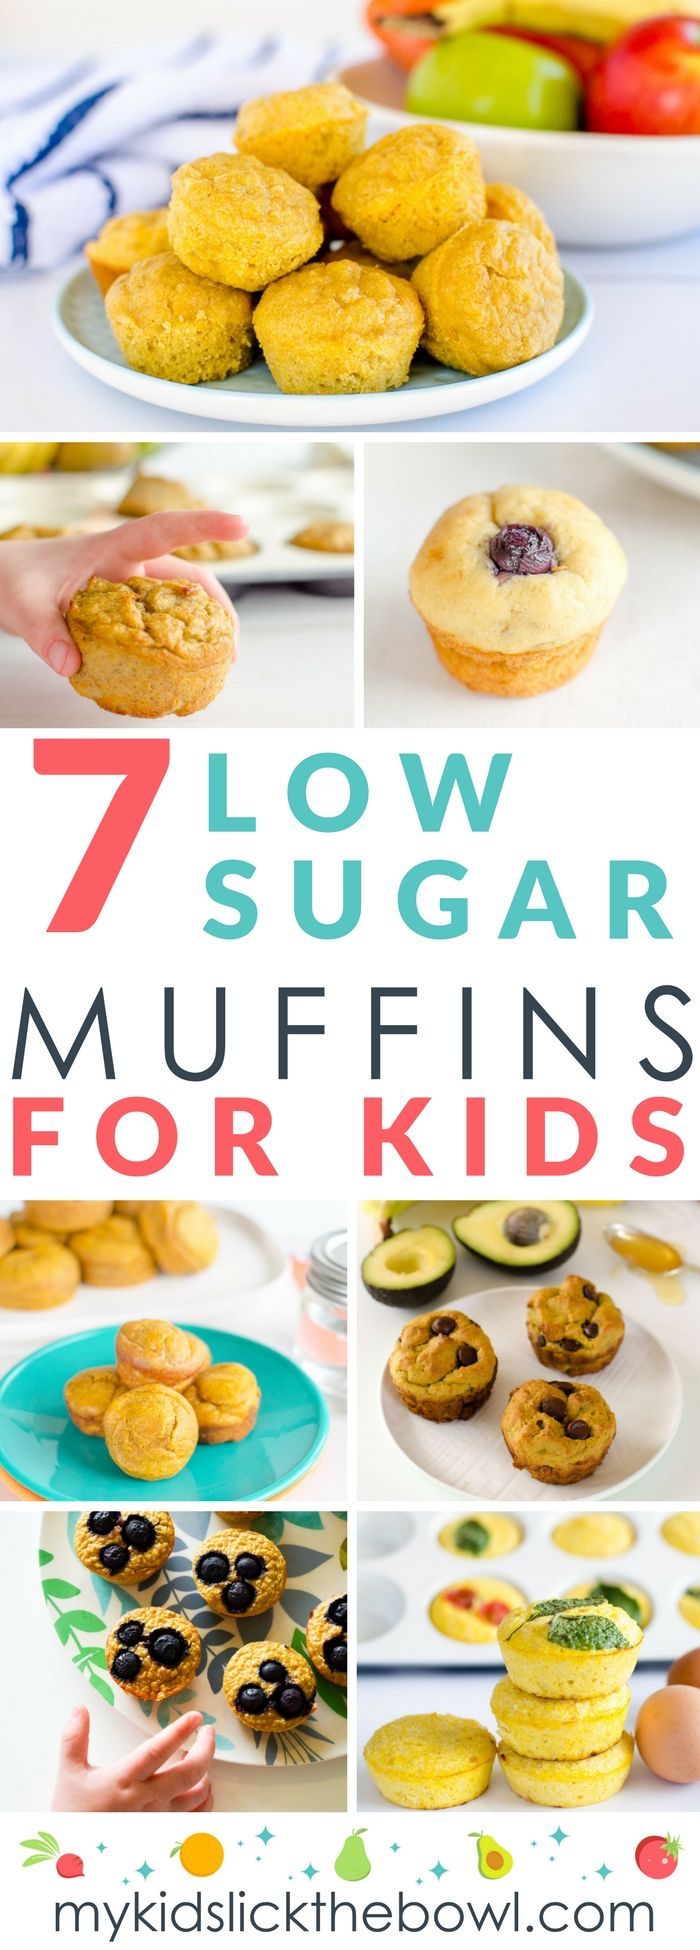 Low sugar muffins, 7 brilliant easy and healthy muffin recipes for kids with no or low added sugar